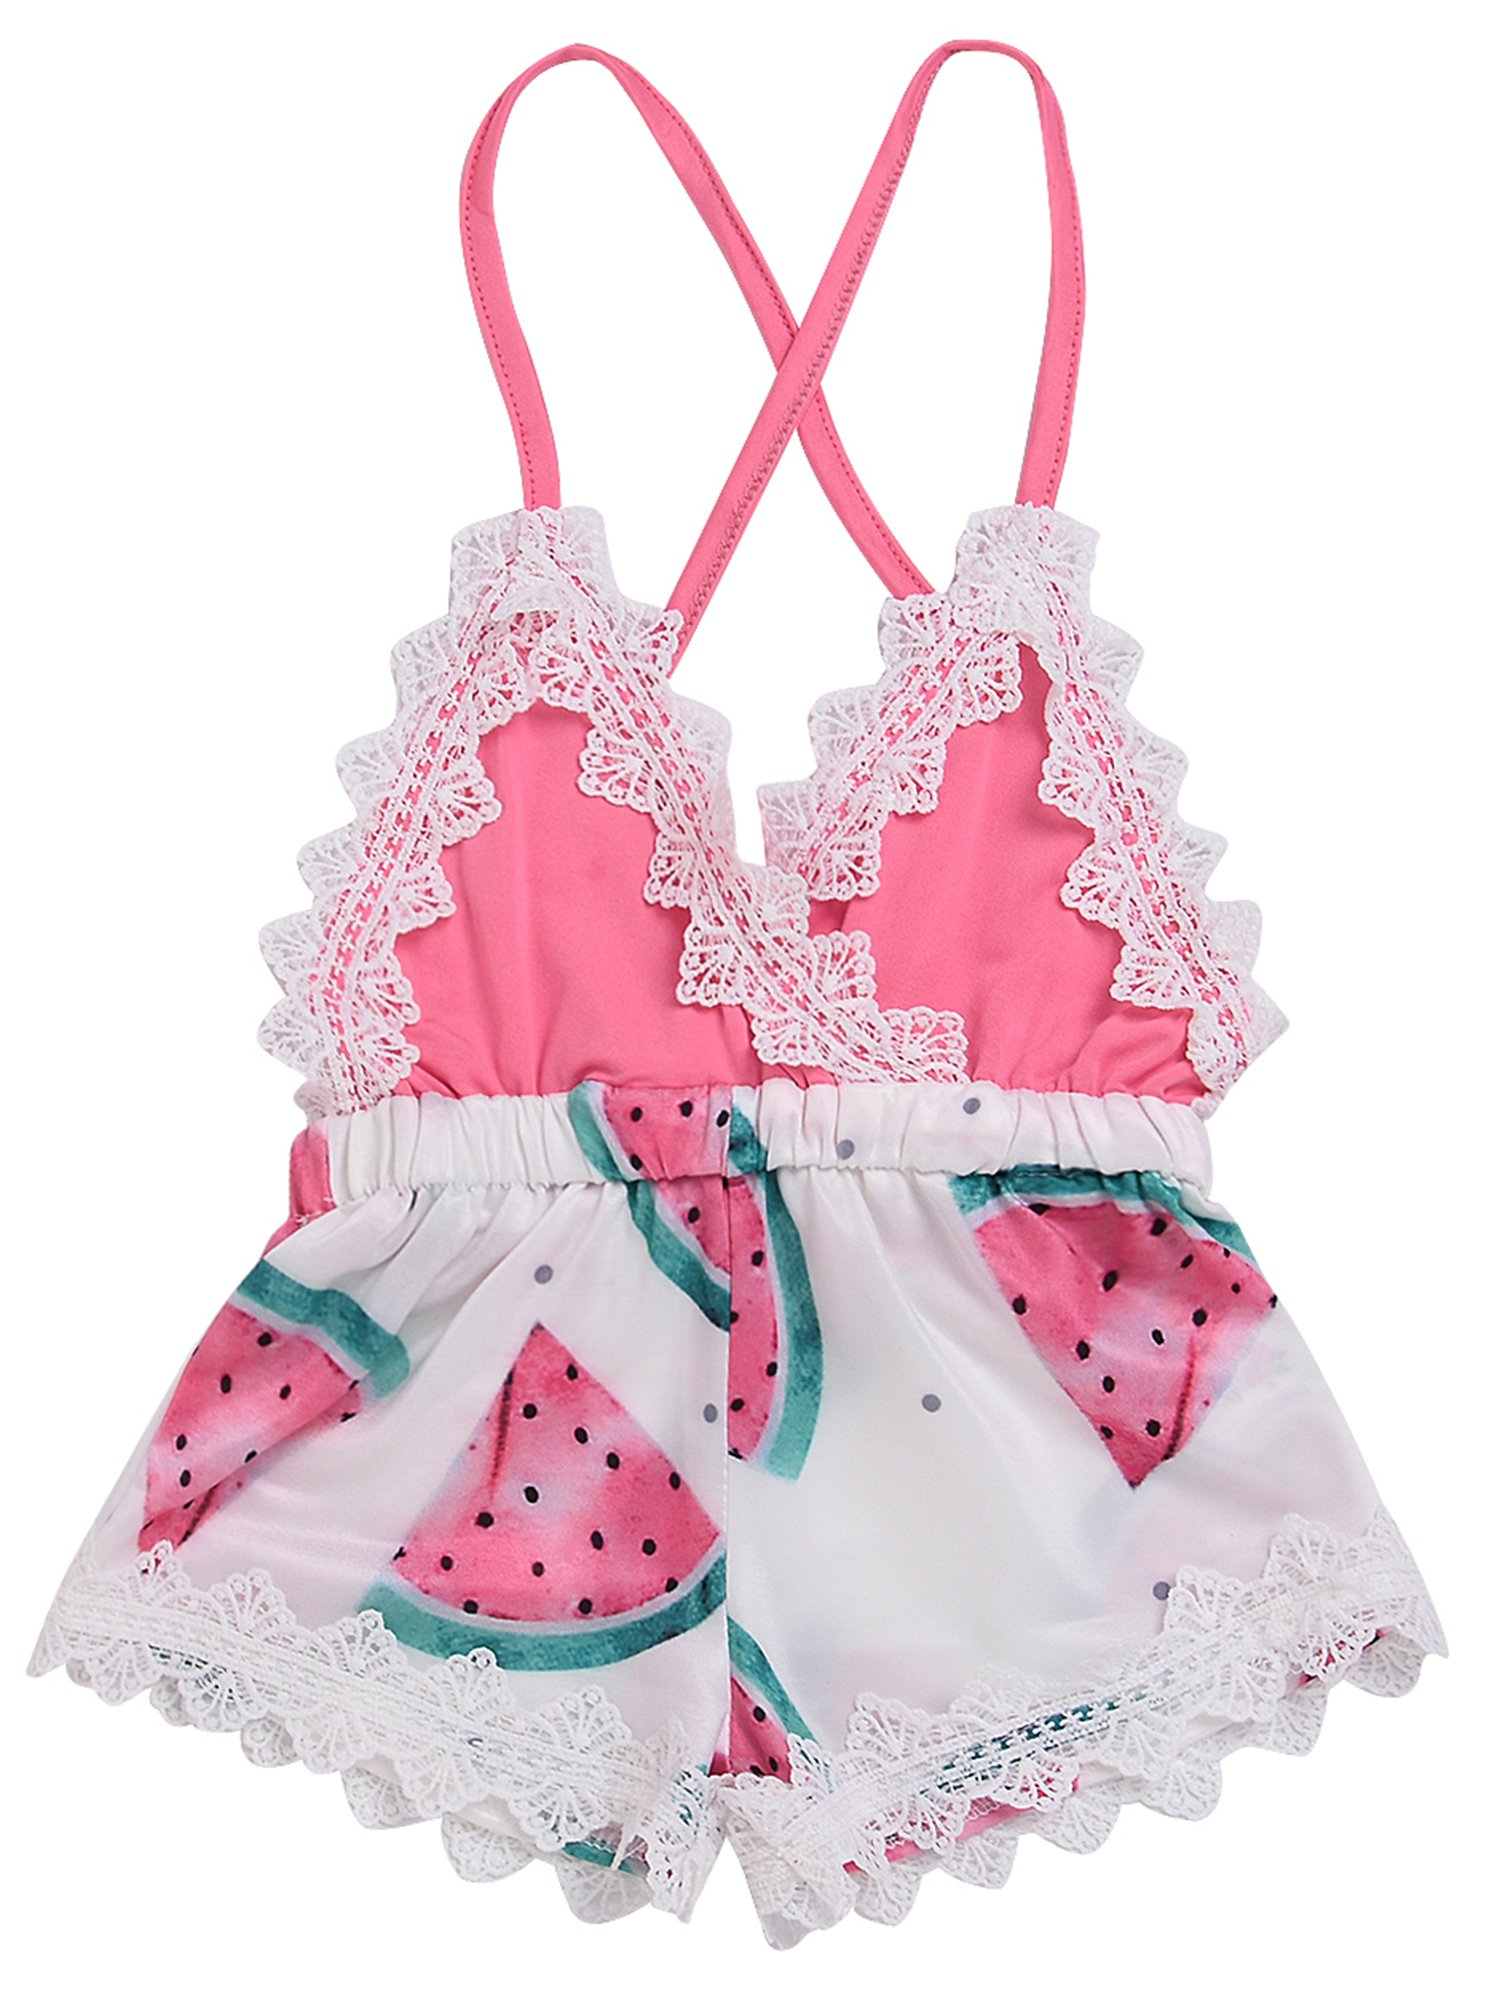 2018 Summer Toddler Baby Girl Clothes Cute Watermelon Print Lace Trim Backless Romper Shorts Jumpsuit (Pink, 12-18 Months)